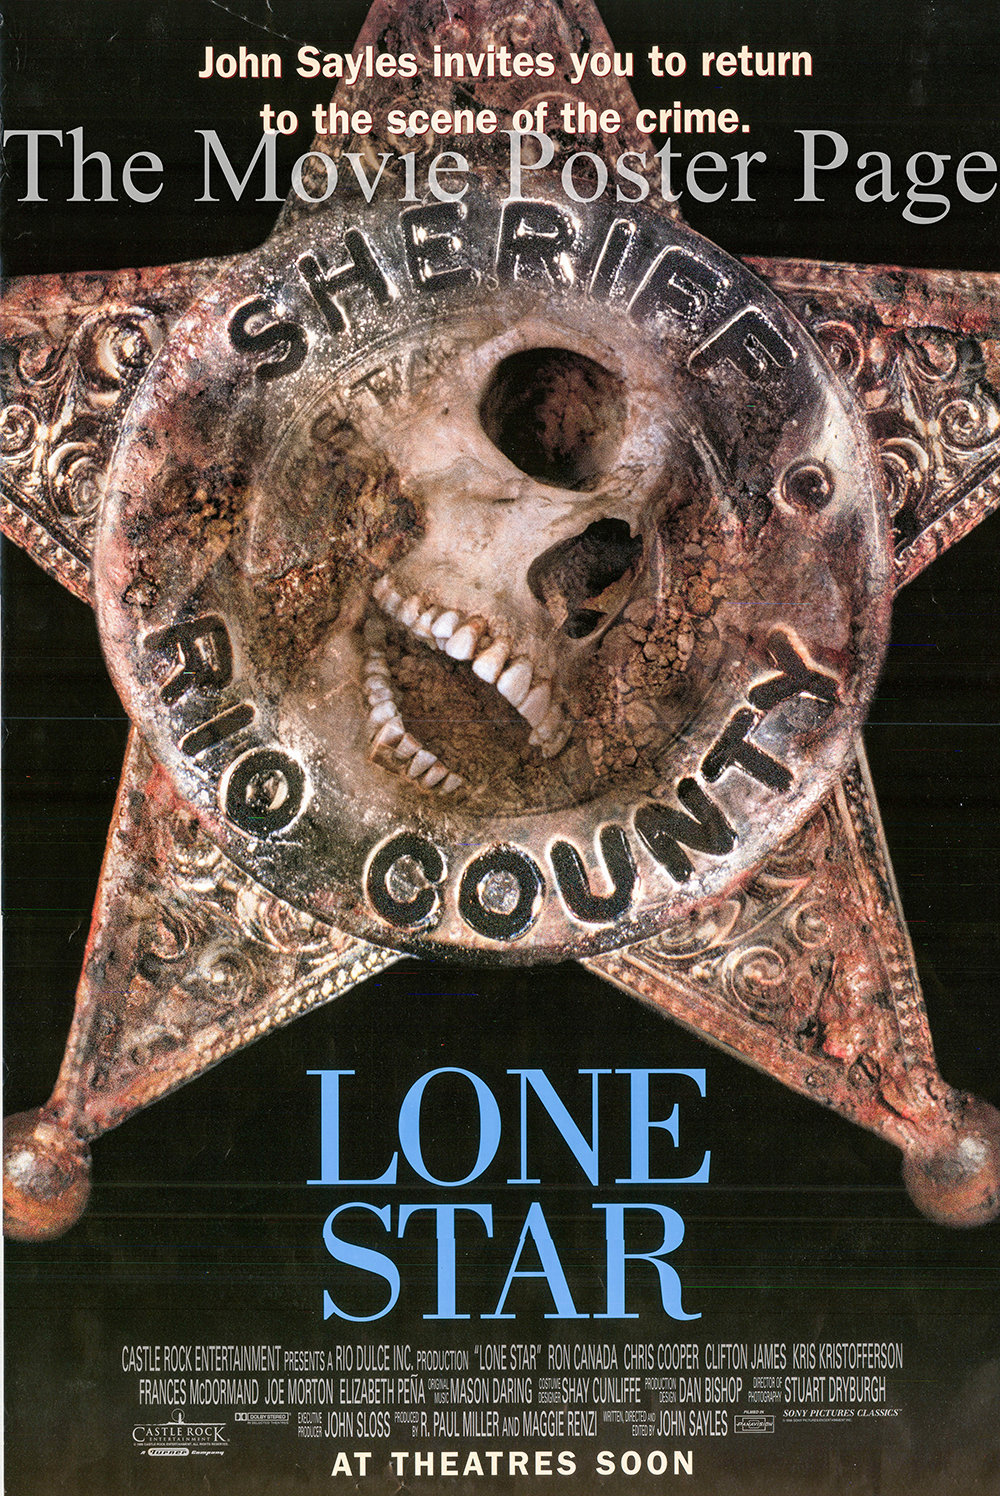 Pictured is a US one-sheet promotional poster for the 1996 John Sayles film Lone Star starring Chris Cooper as Sam Deeds.